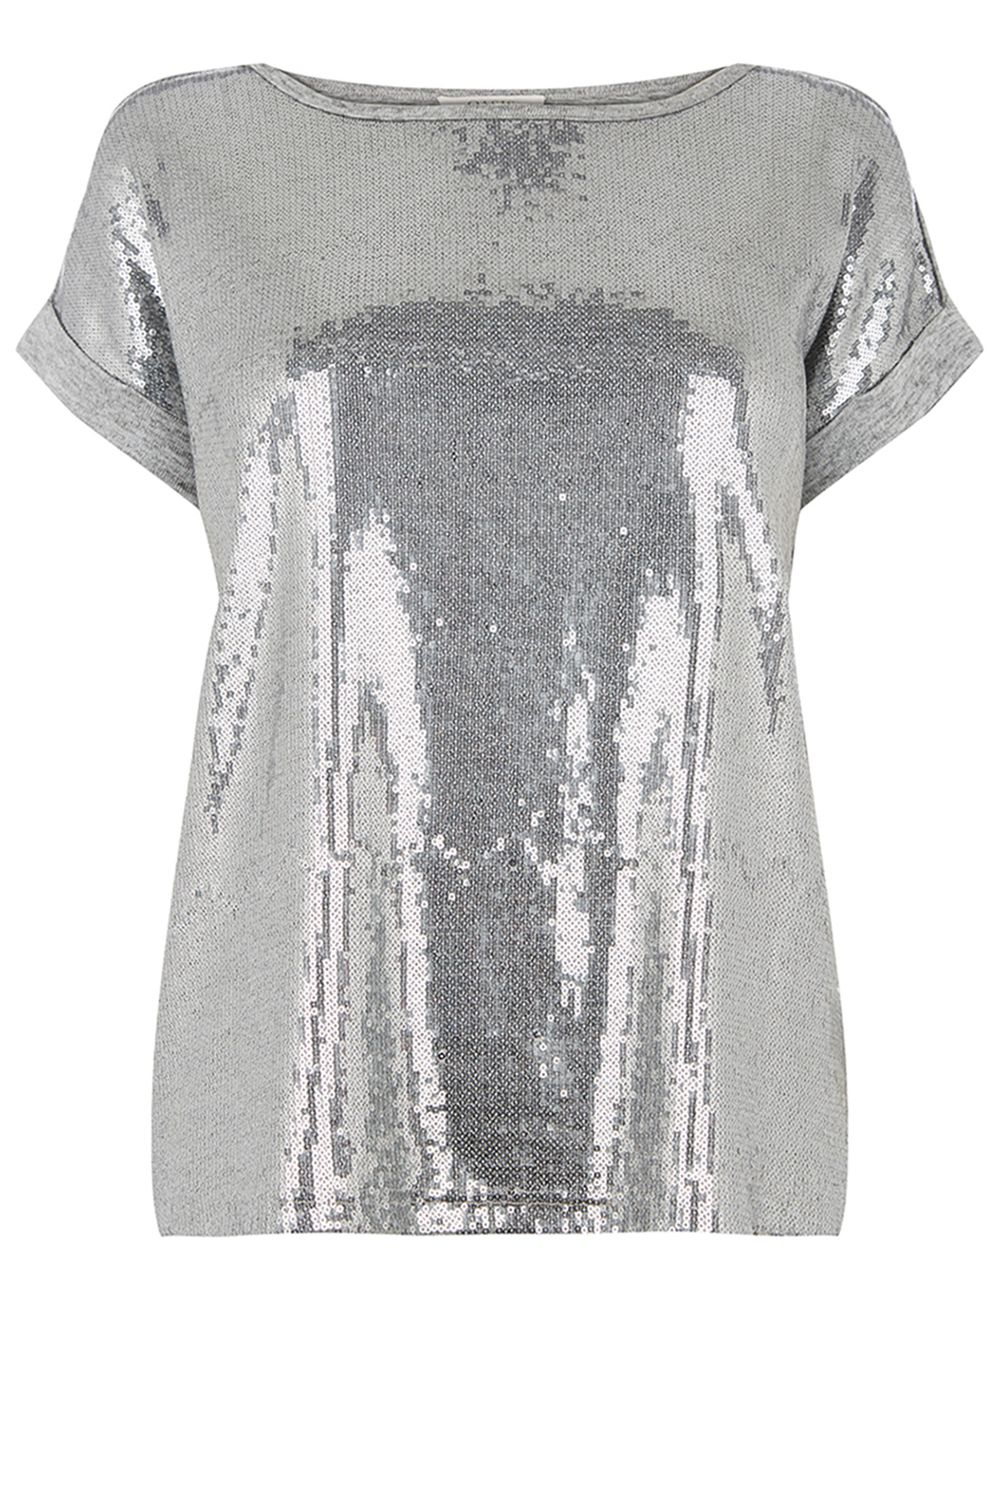 Oasis Sequin Panelled Tee, Grey